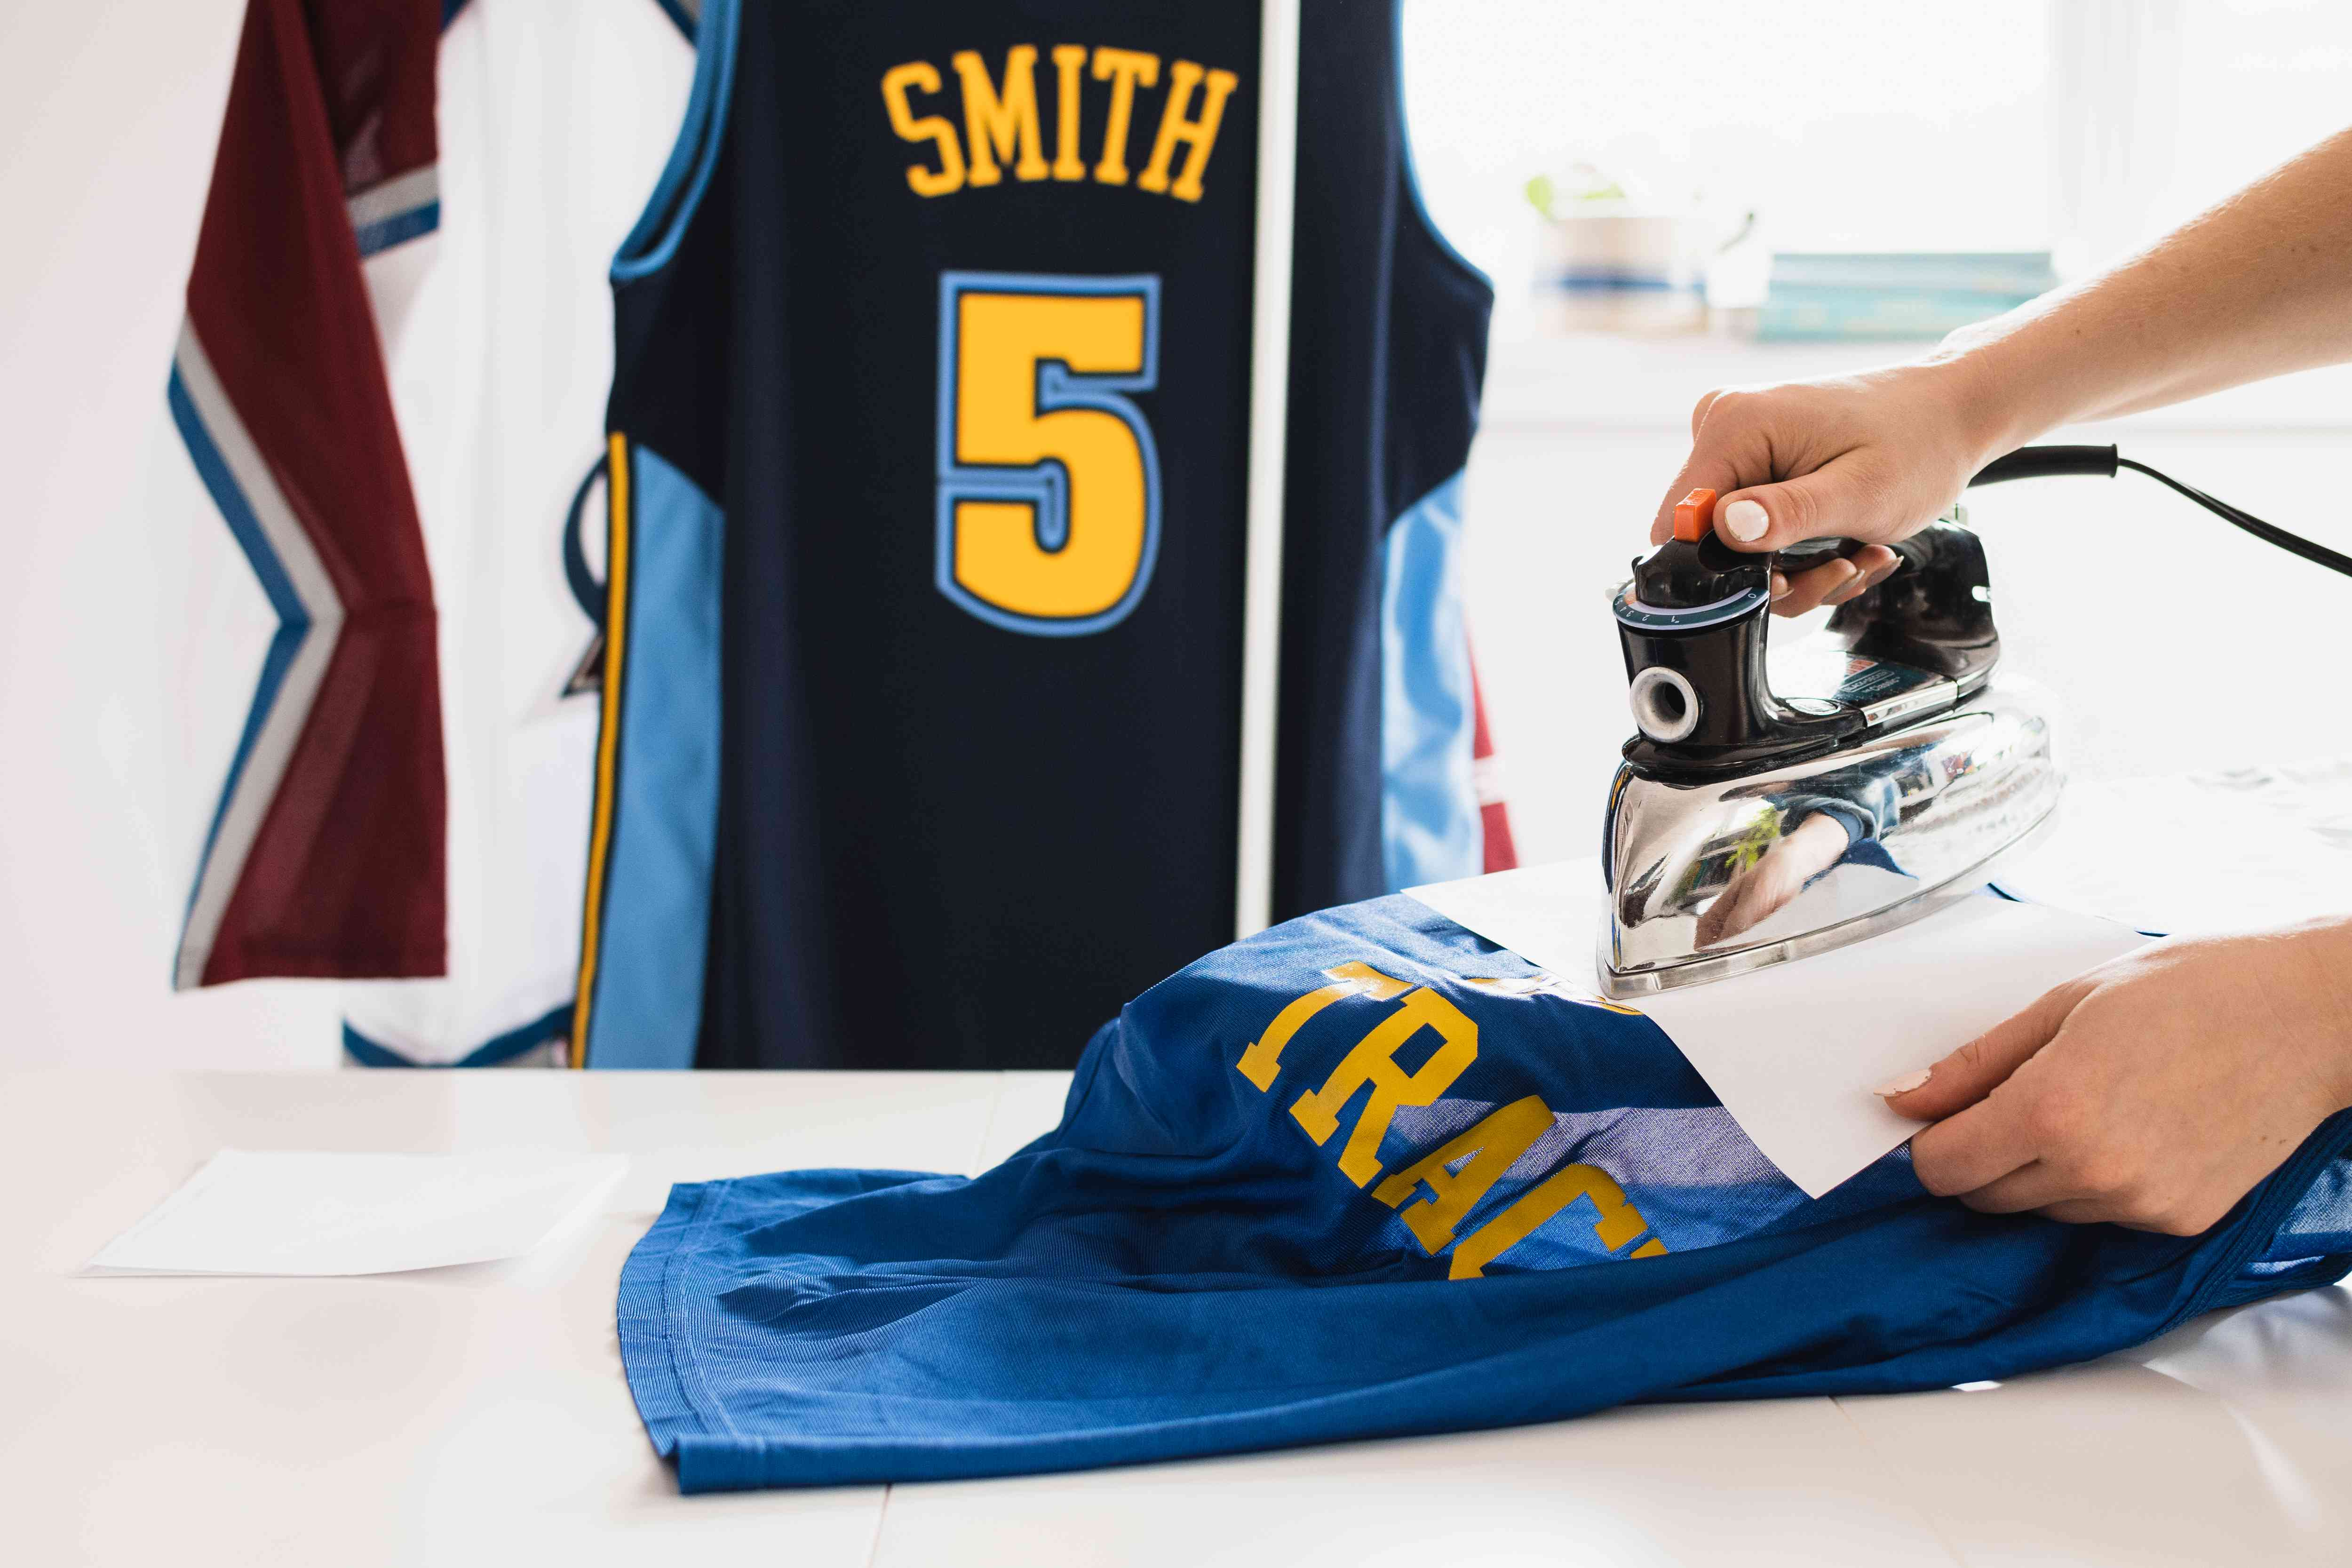 Repairing lettering of team jersey with iron and decal paper